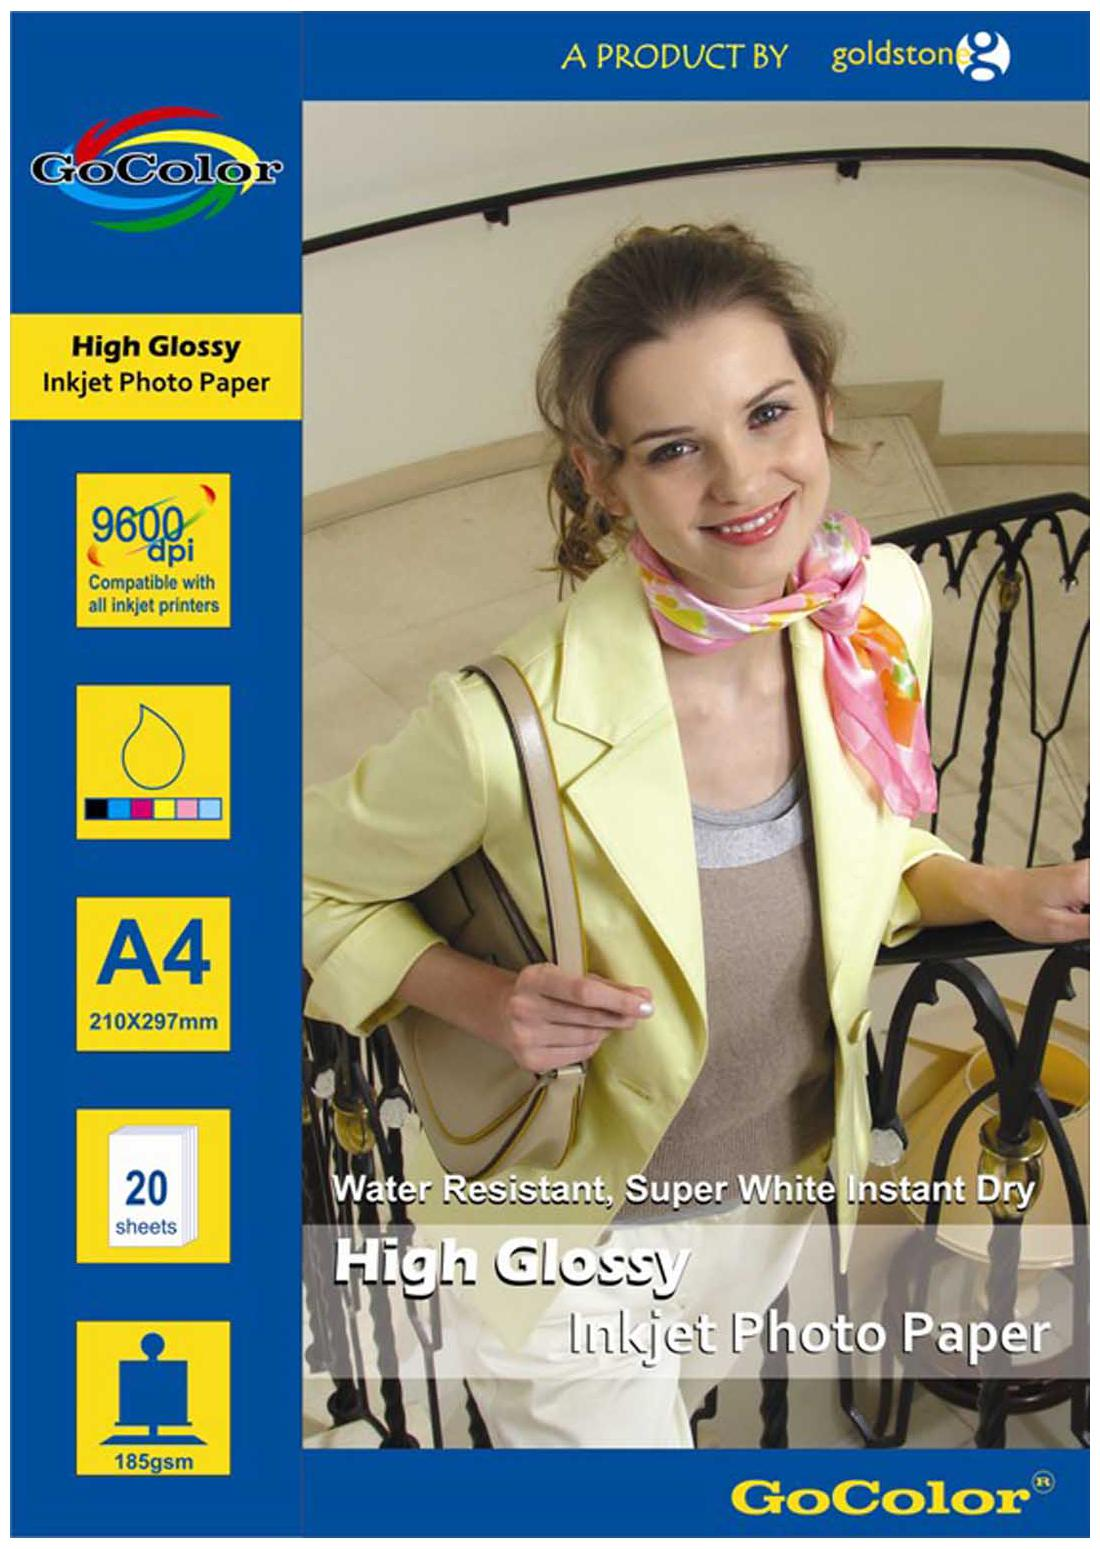 GoColor High Glossy Inkjet Photo Paper 185Gsm A4/ 20 Sheets